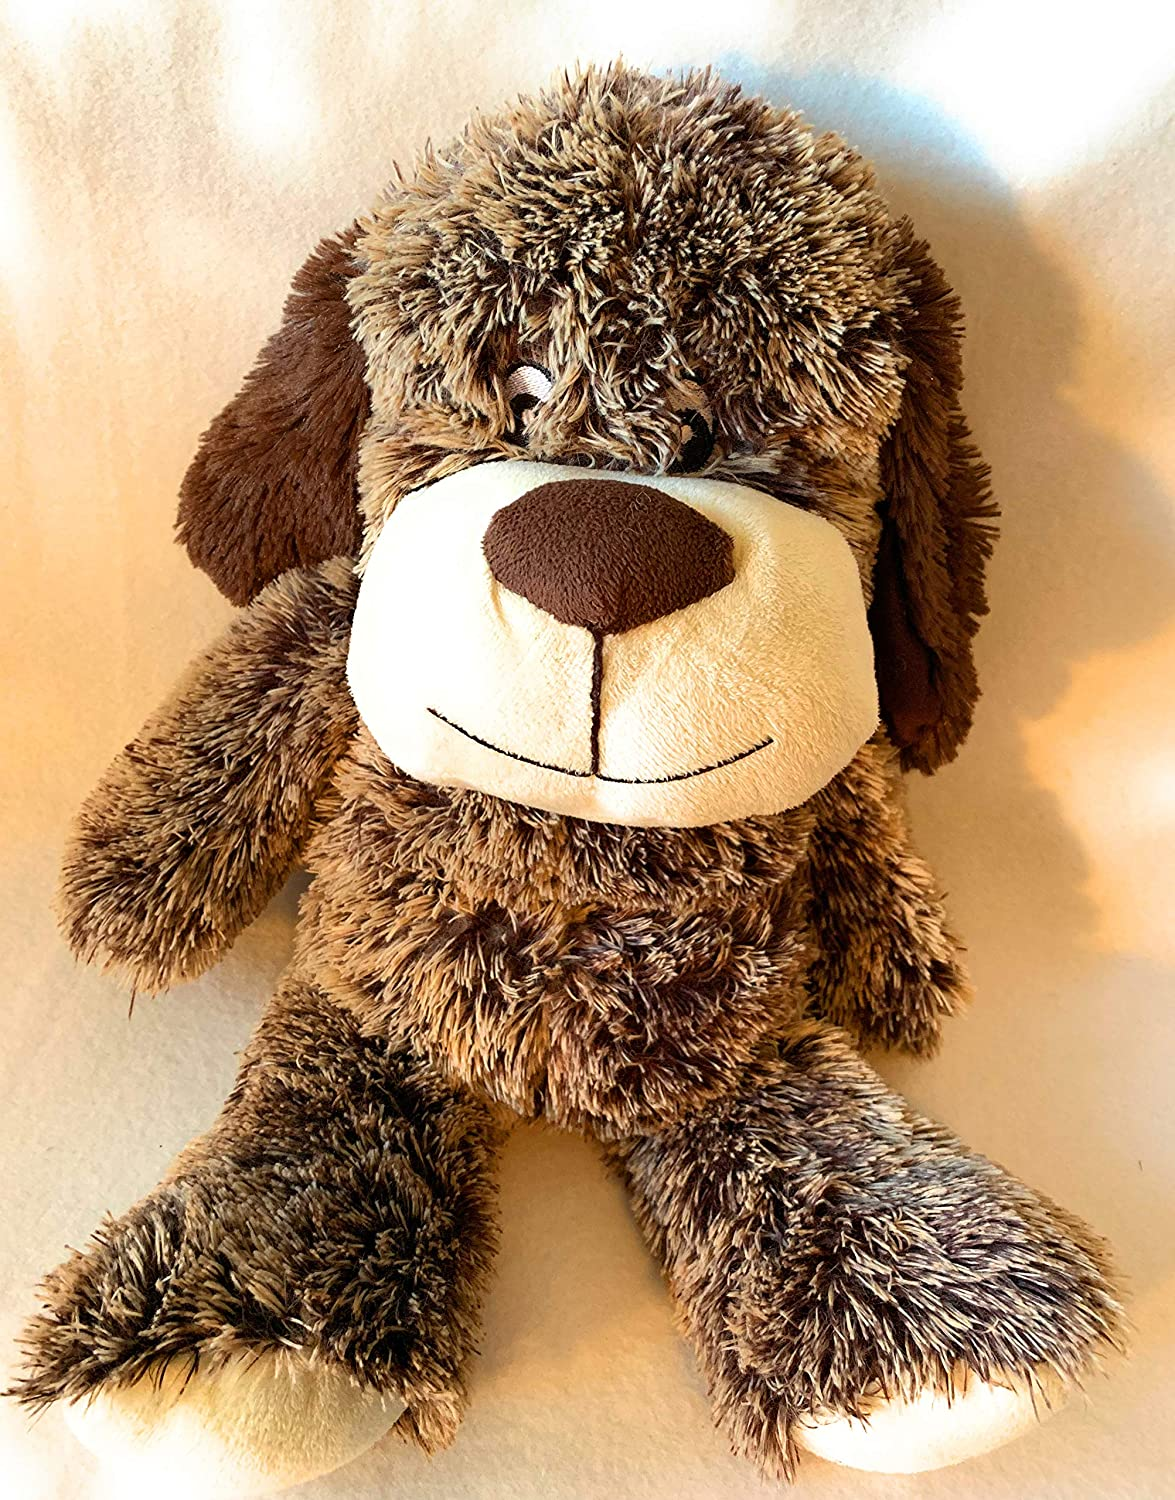 washable weighted stuffed animal WEIGHTED PLUSH DOG with 4 lbs